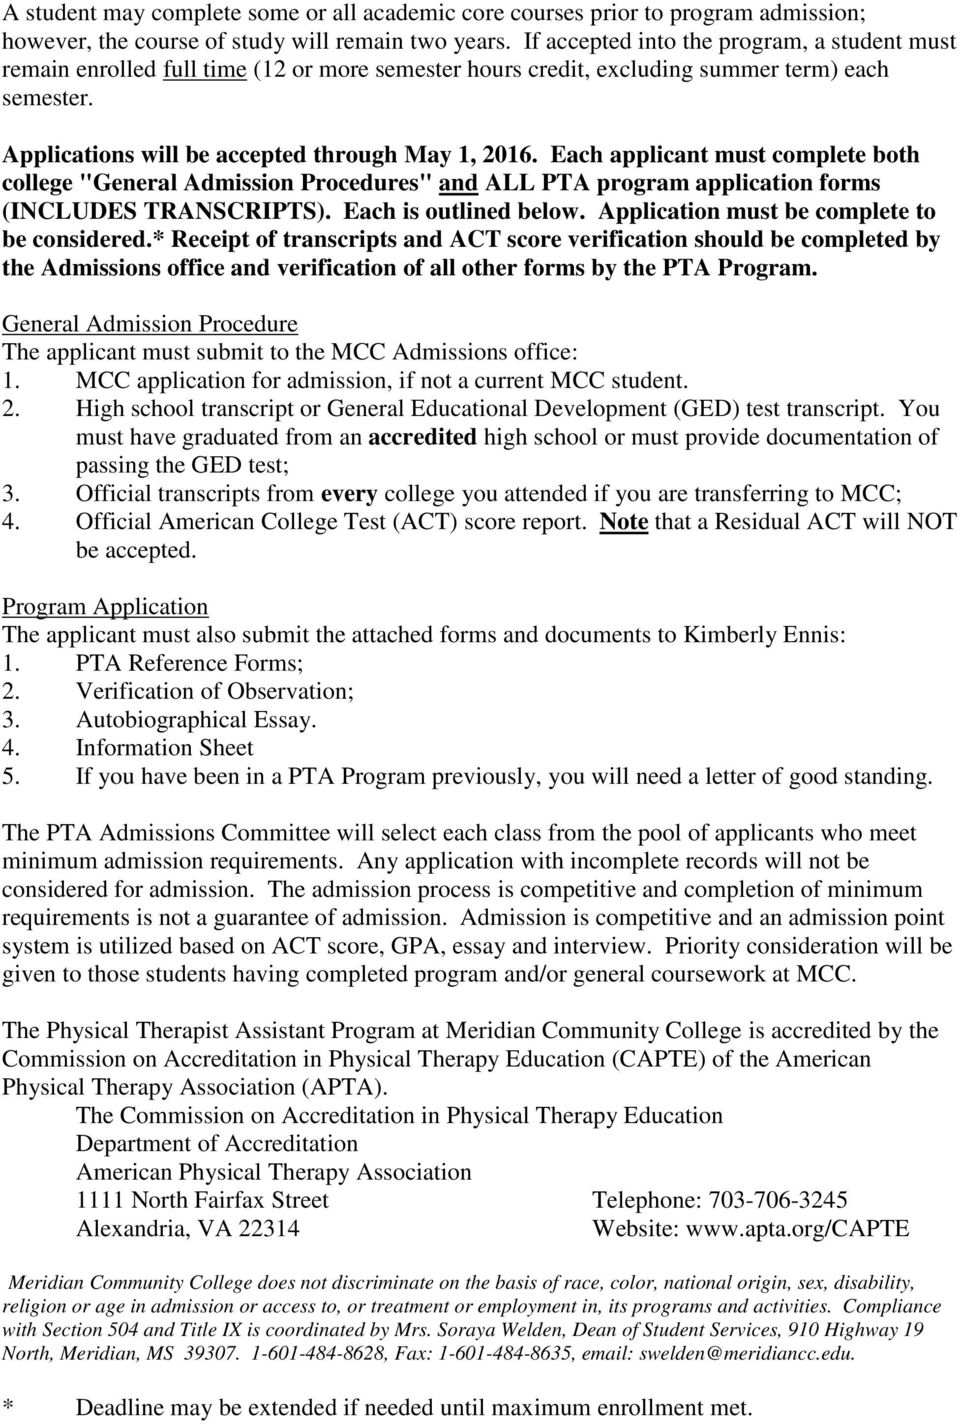 "Each applicant must complete both college ""General Admission Procedures"" and ALL PTA program application forms (INCLUDES TRANSCRIPTS). Each is outlined below."